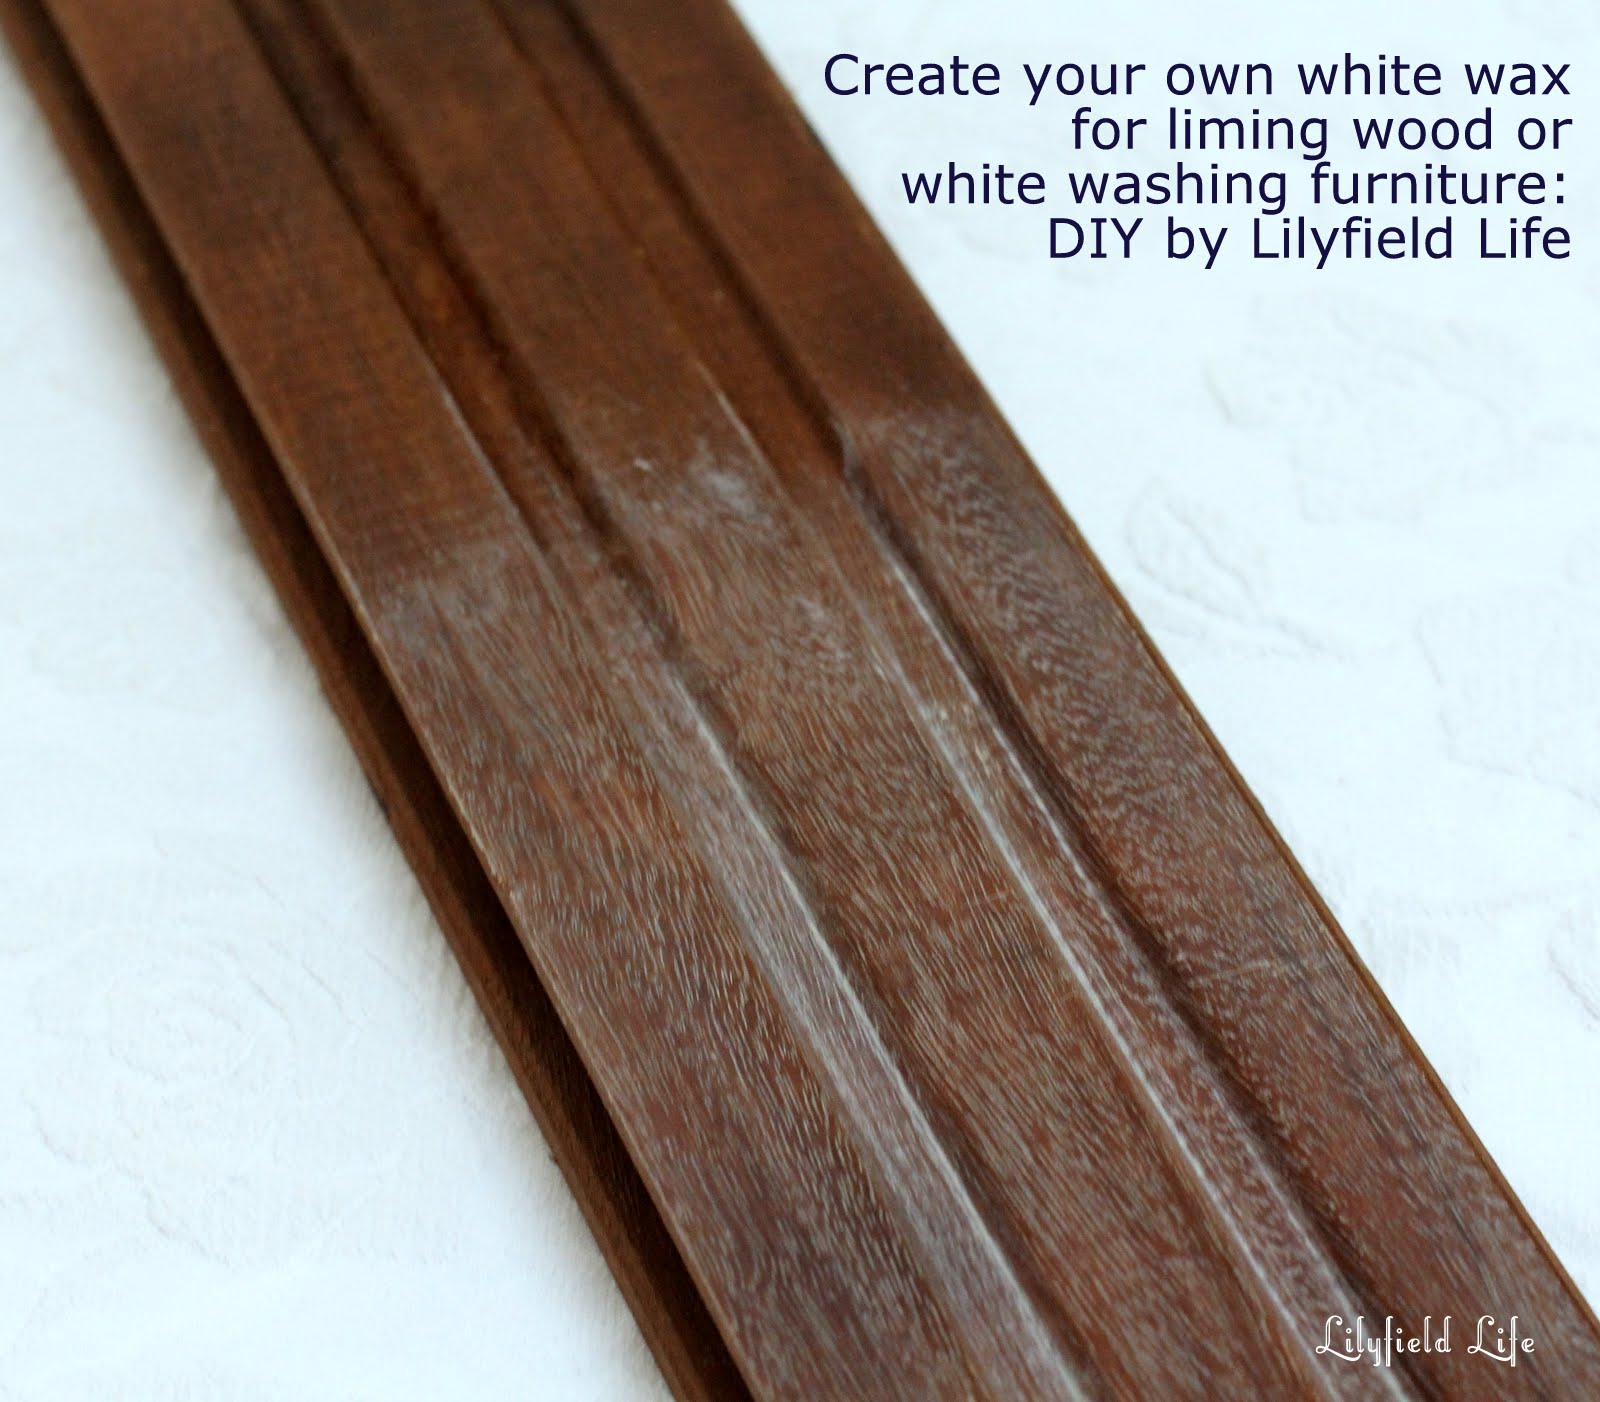 White Wax  Liming Wax  Make your own. Lilyfield Life  White Wax  Liming Wax  Make your own